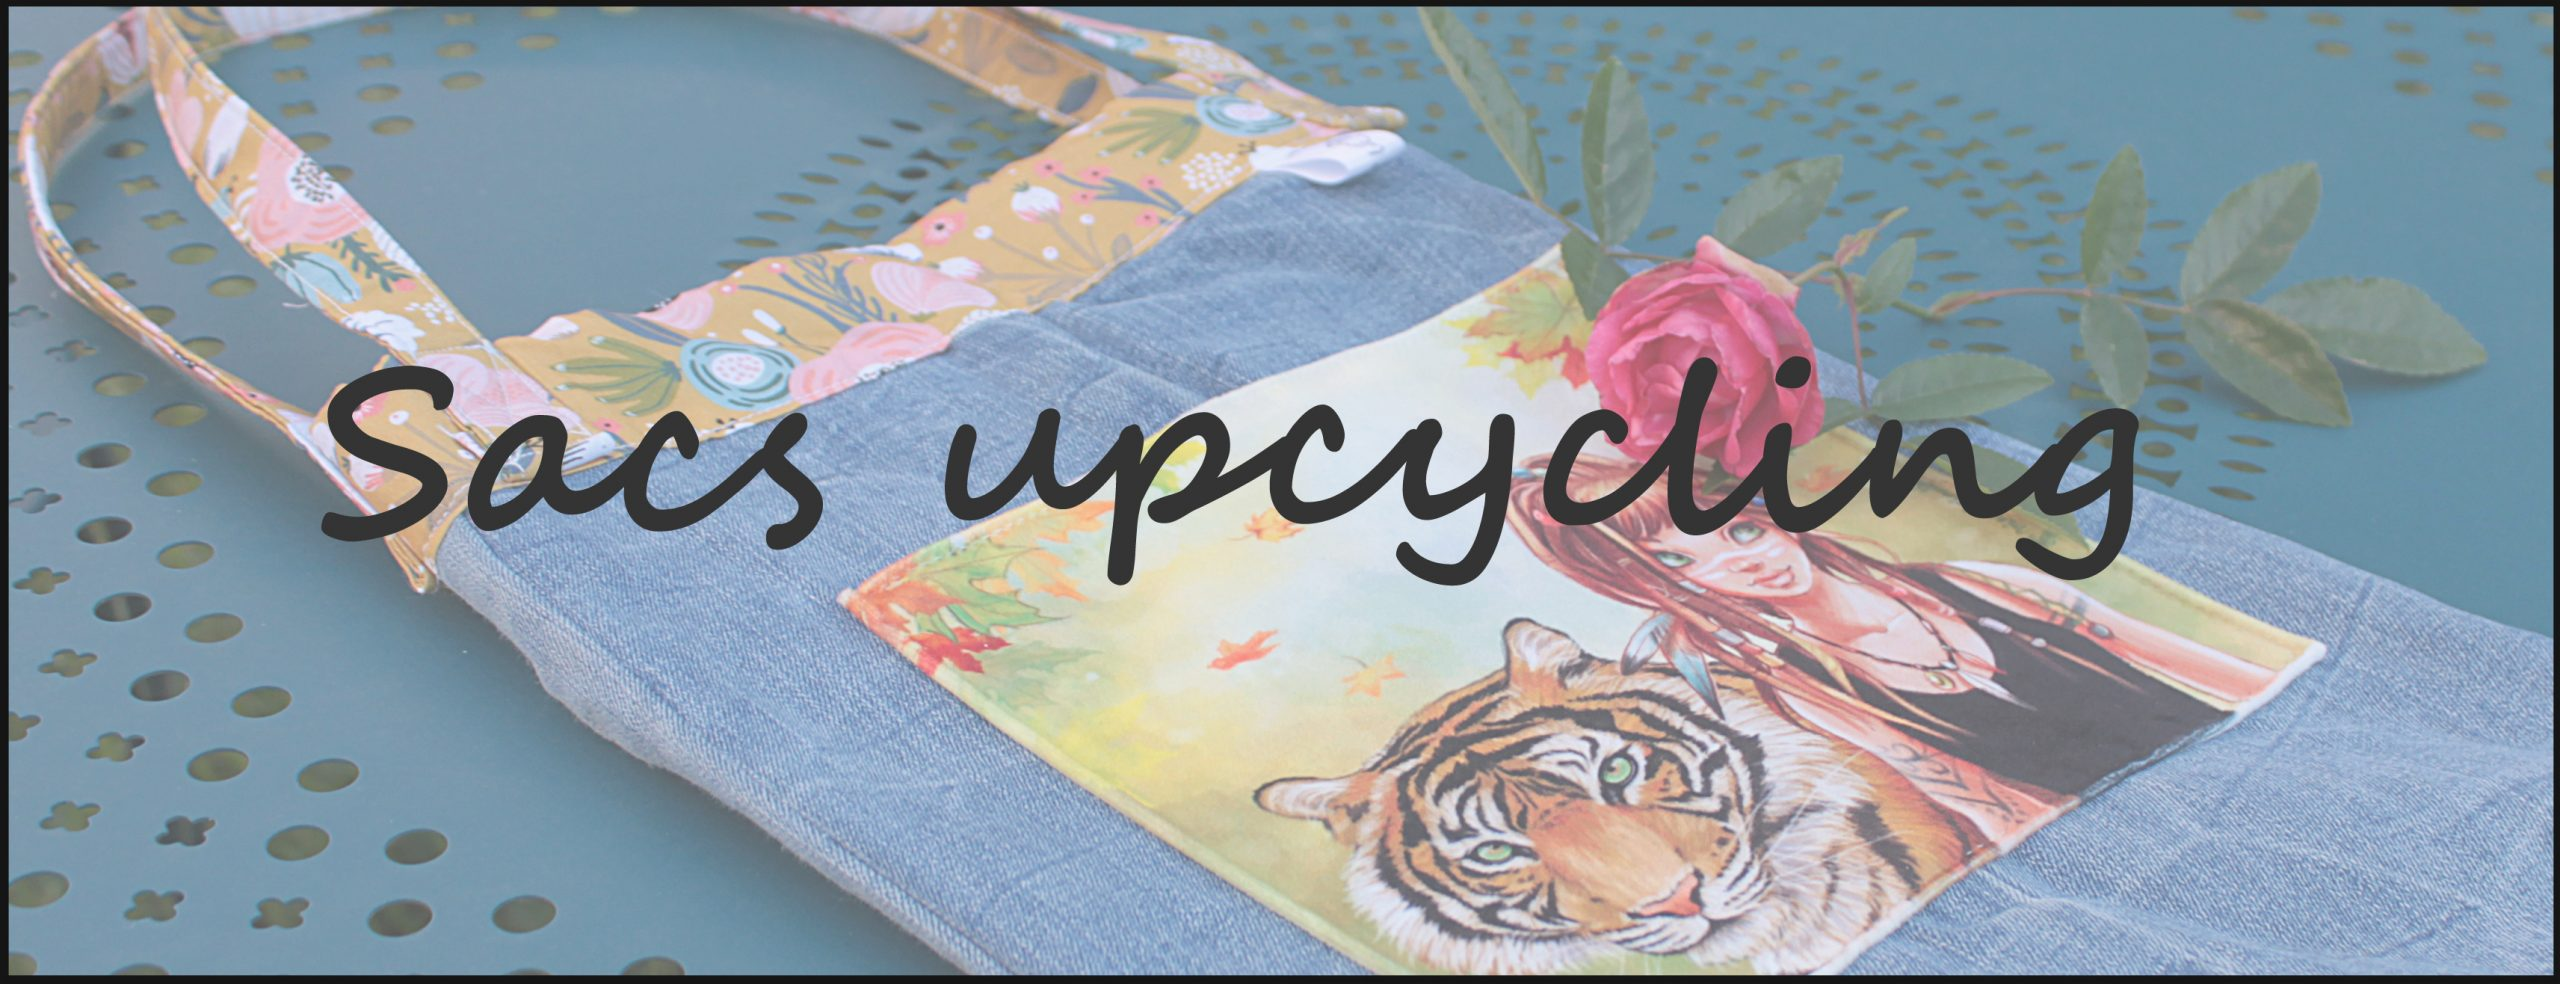 sac upcycling